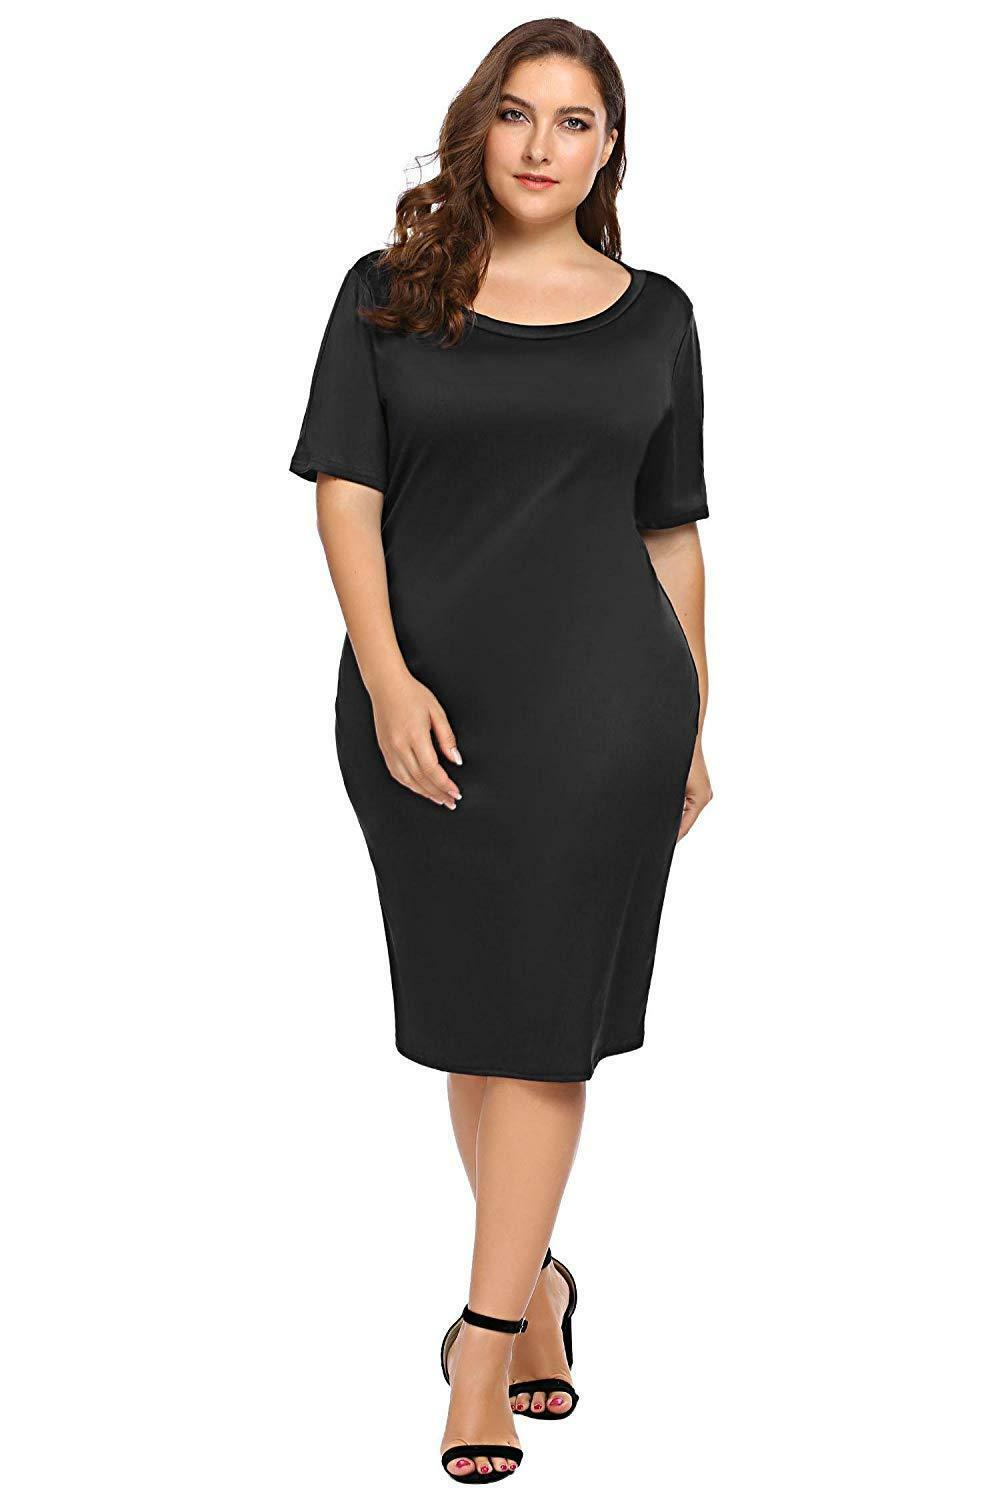 Zeagoo Women Plus Size Loose Fit Short Sleeve O-Neck Casual Midi Dress image 8